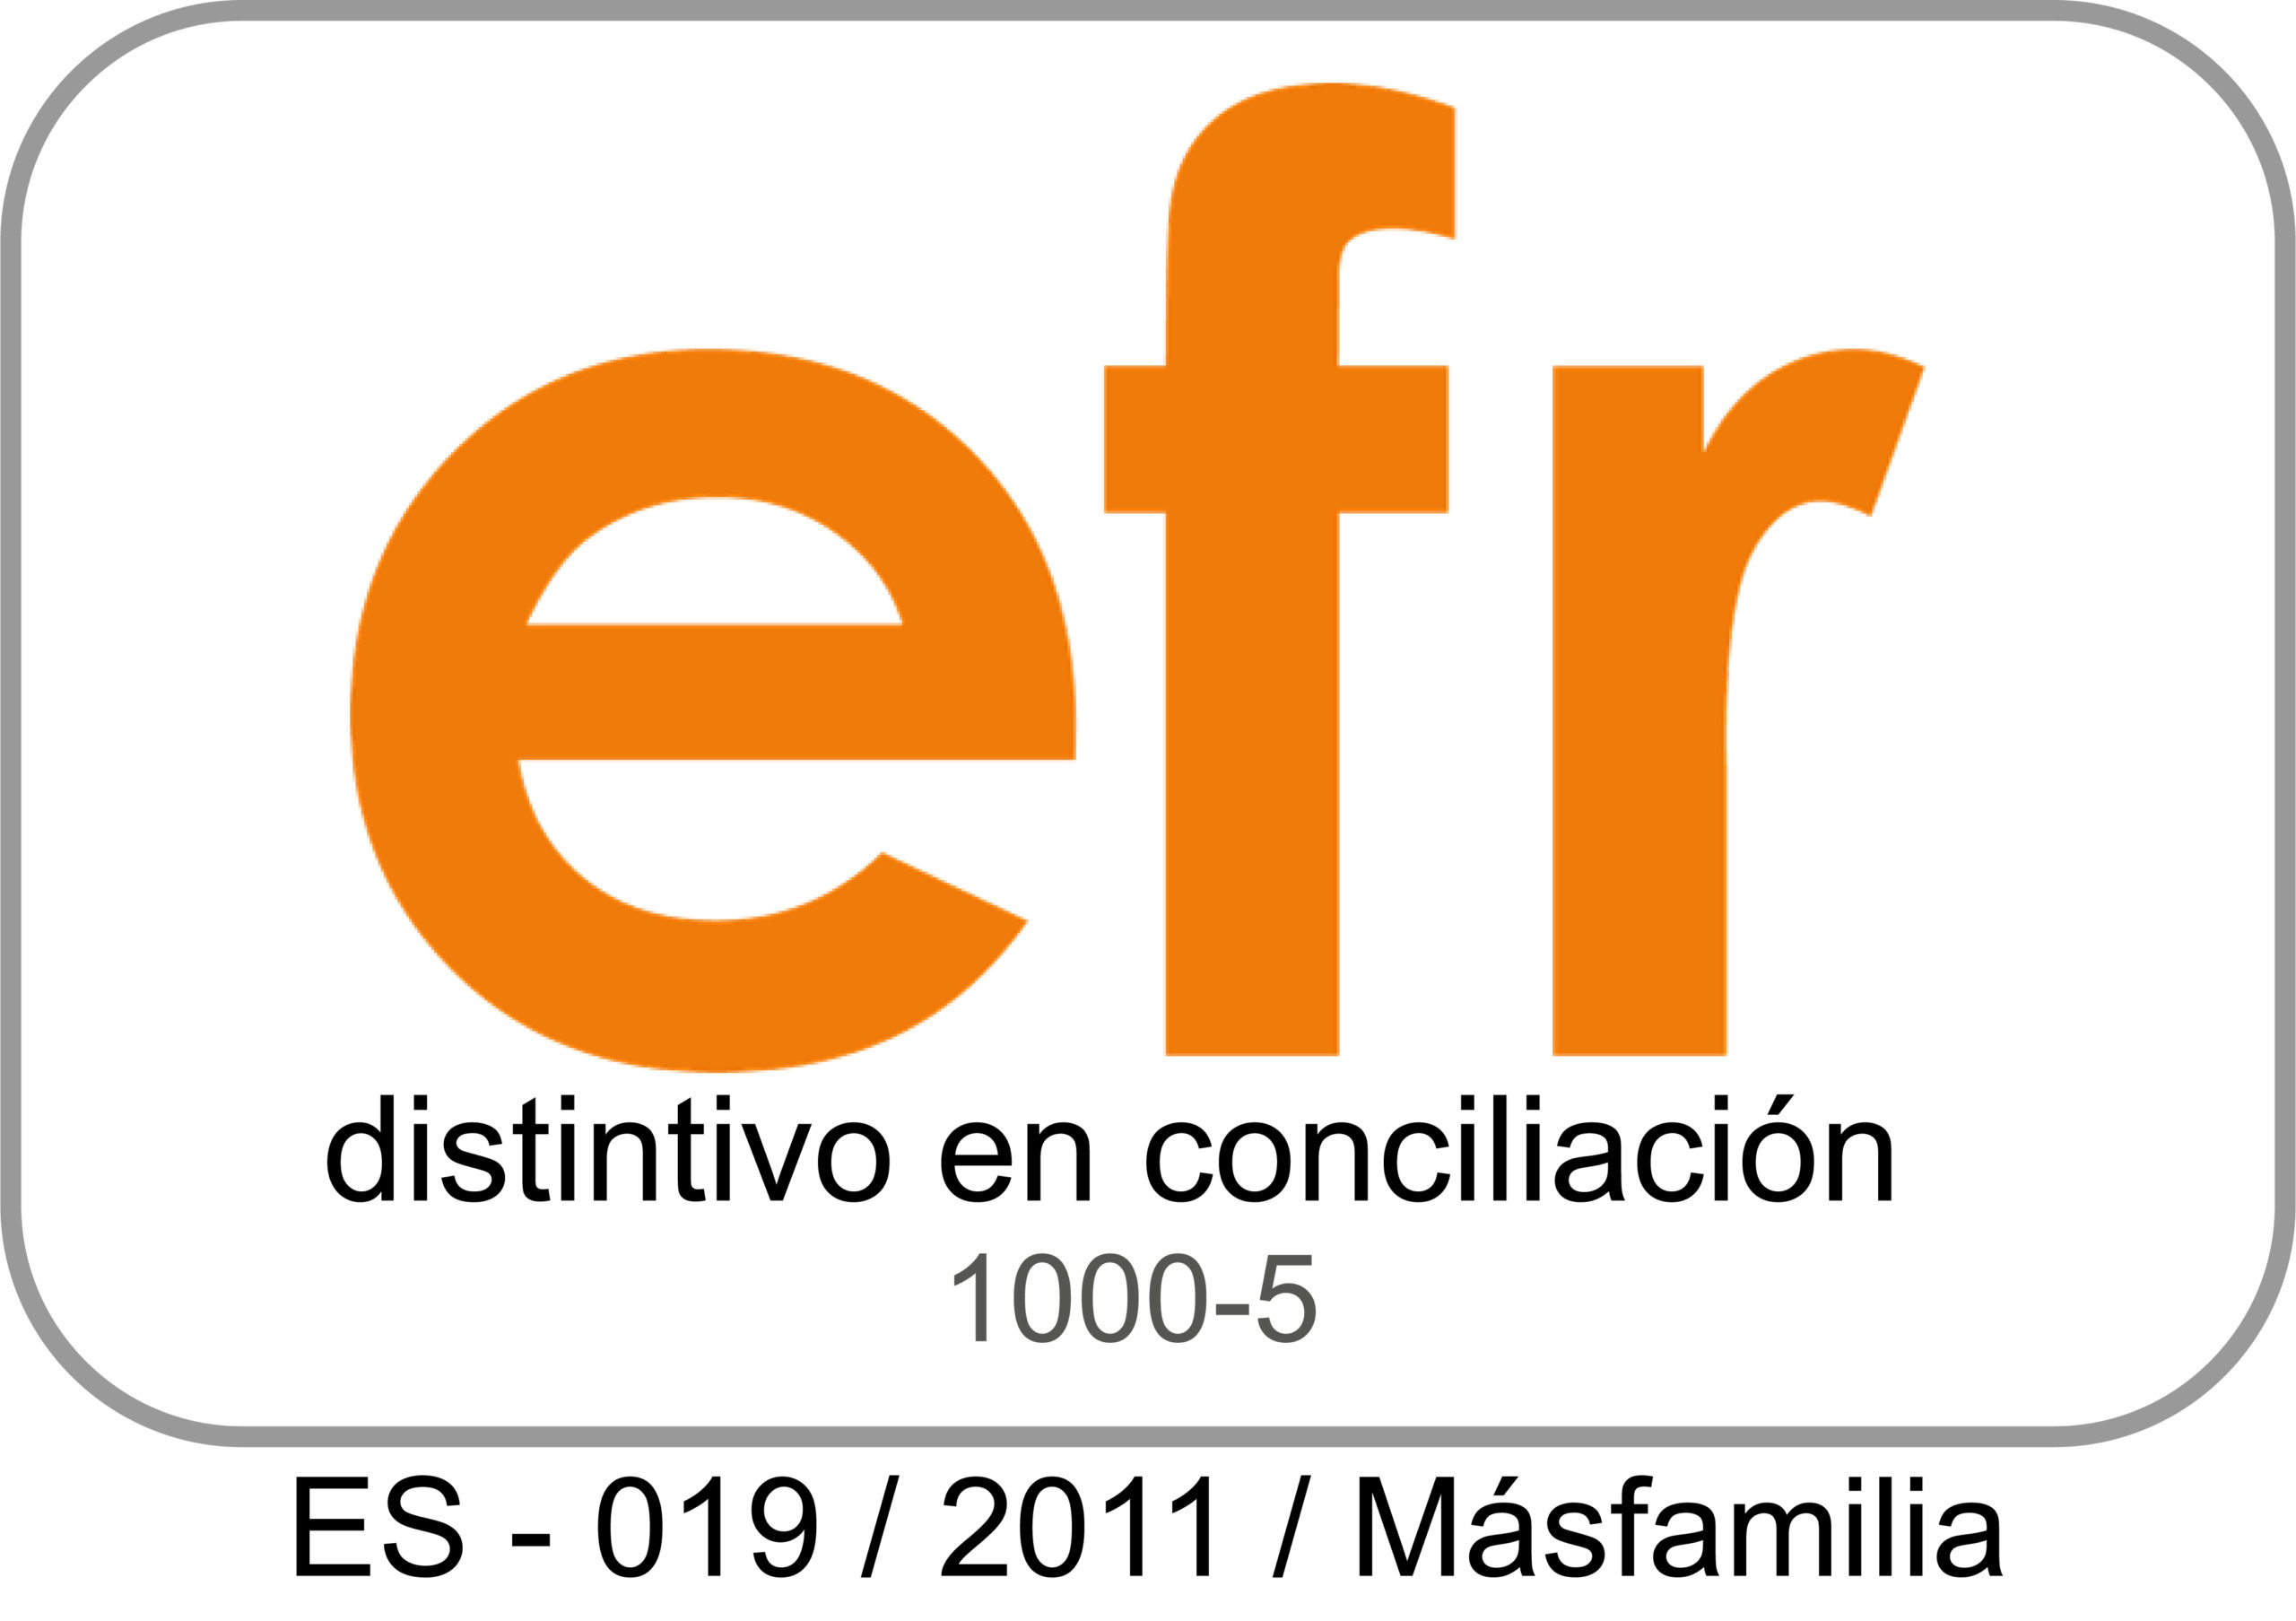 ASOCIACION SONRISAS sello efr_ color